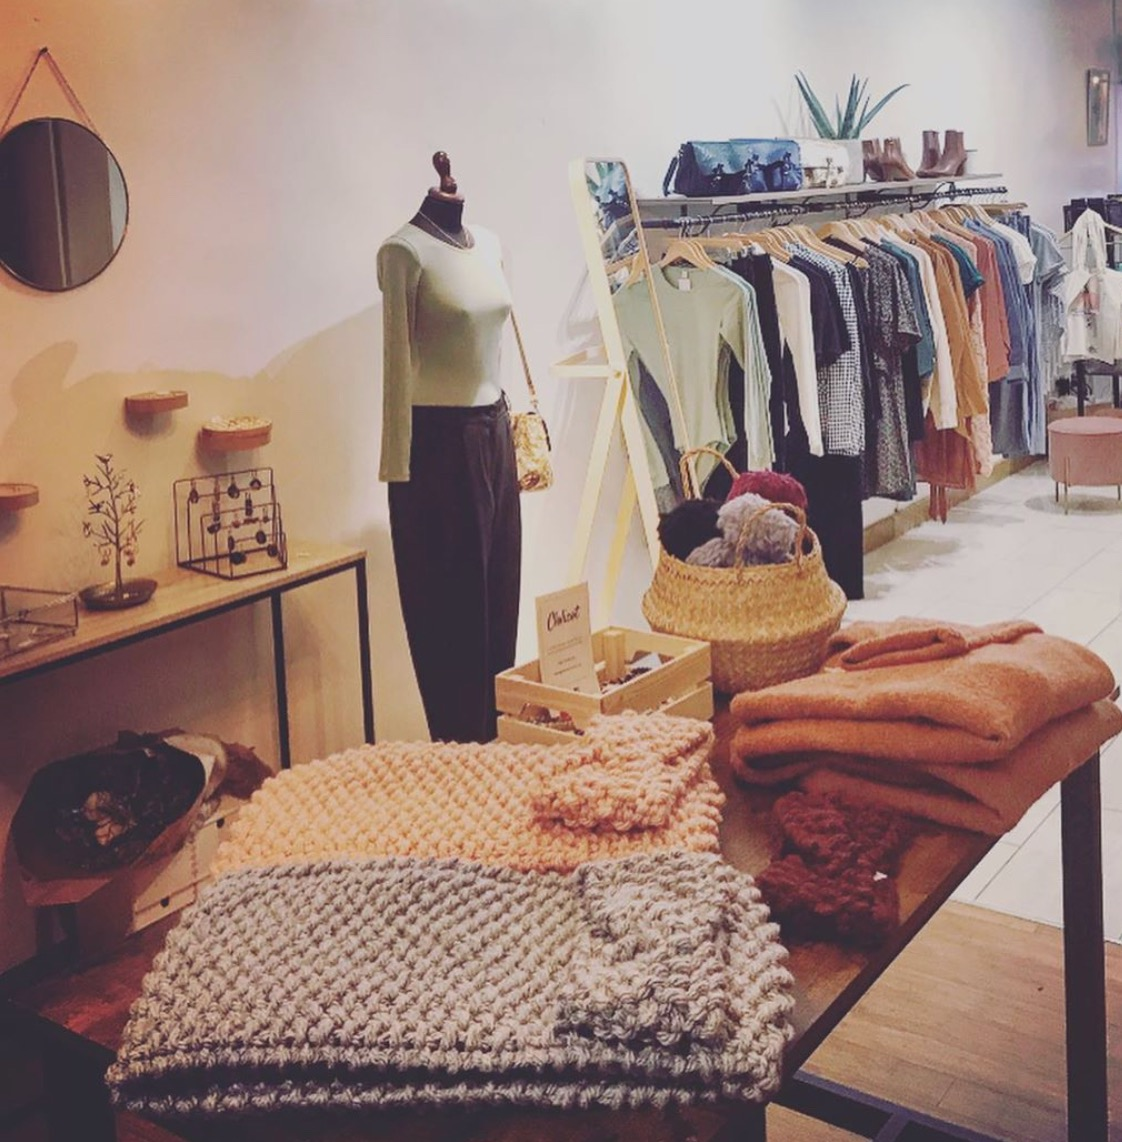 """, """"Aux Deux Comptoirs"""", une nouvelle adresse mode à croquer, Made in Marseille, Made in Marseille"""